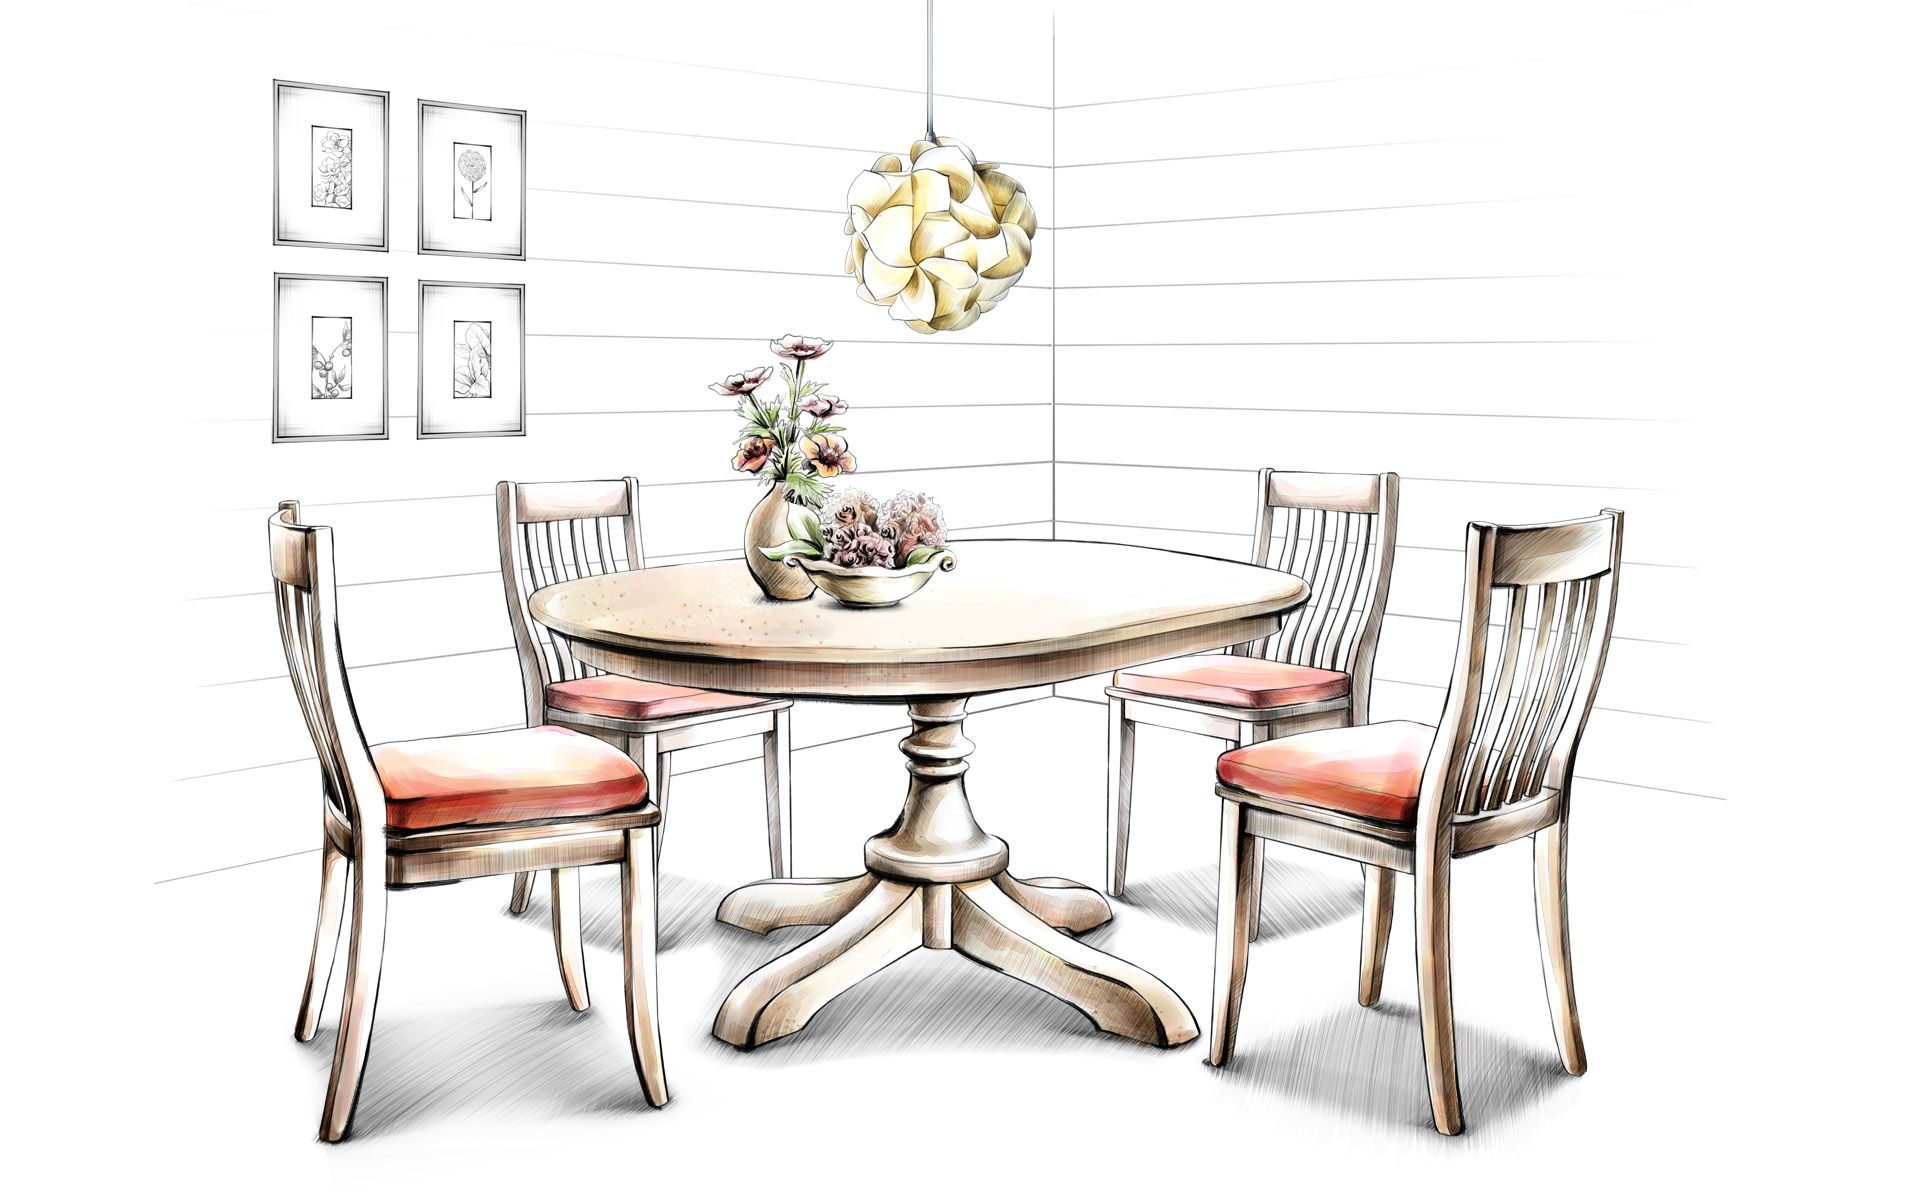 Dining room perspective drawing - Hand Drawing Interior Home